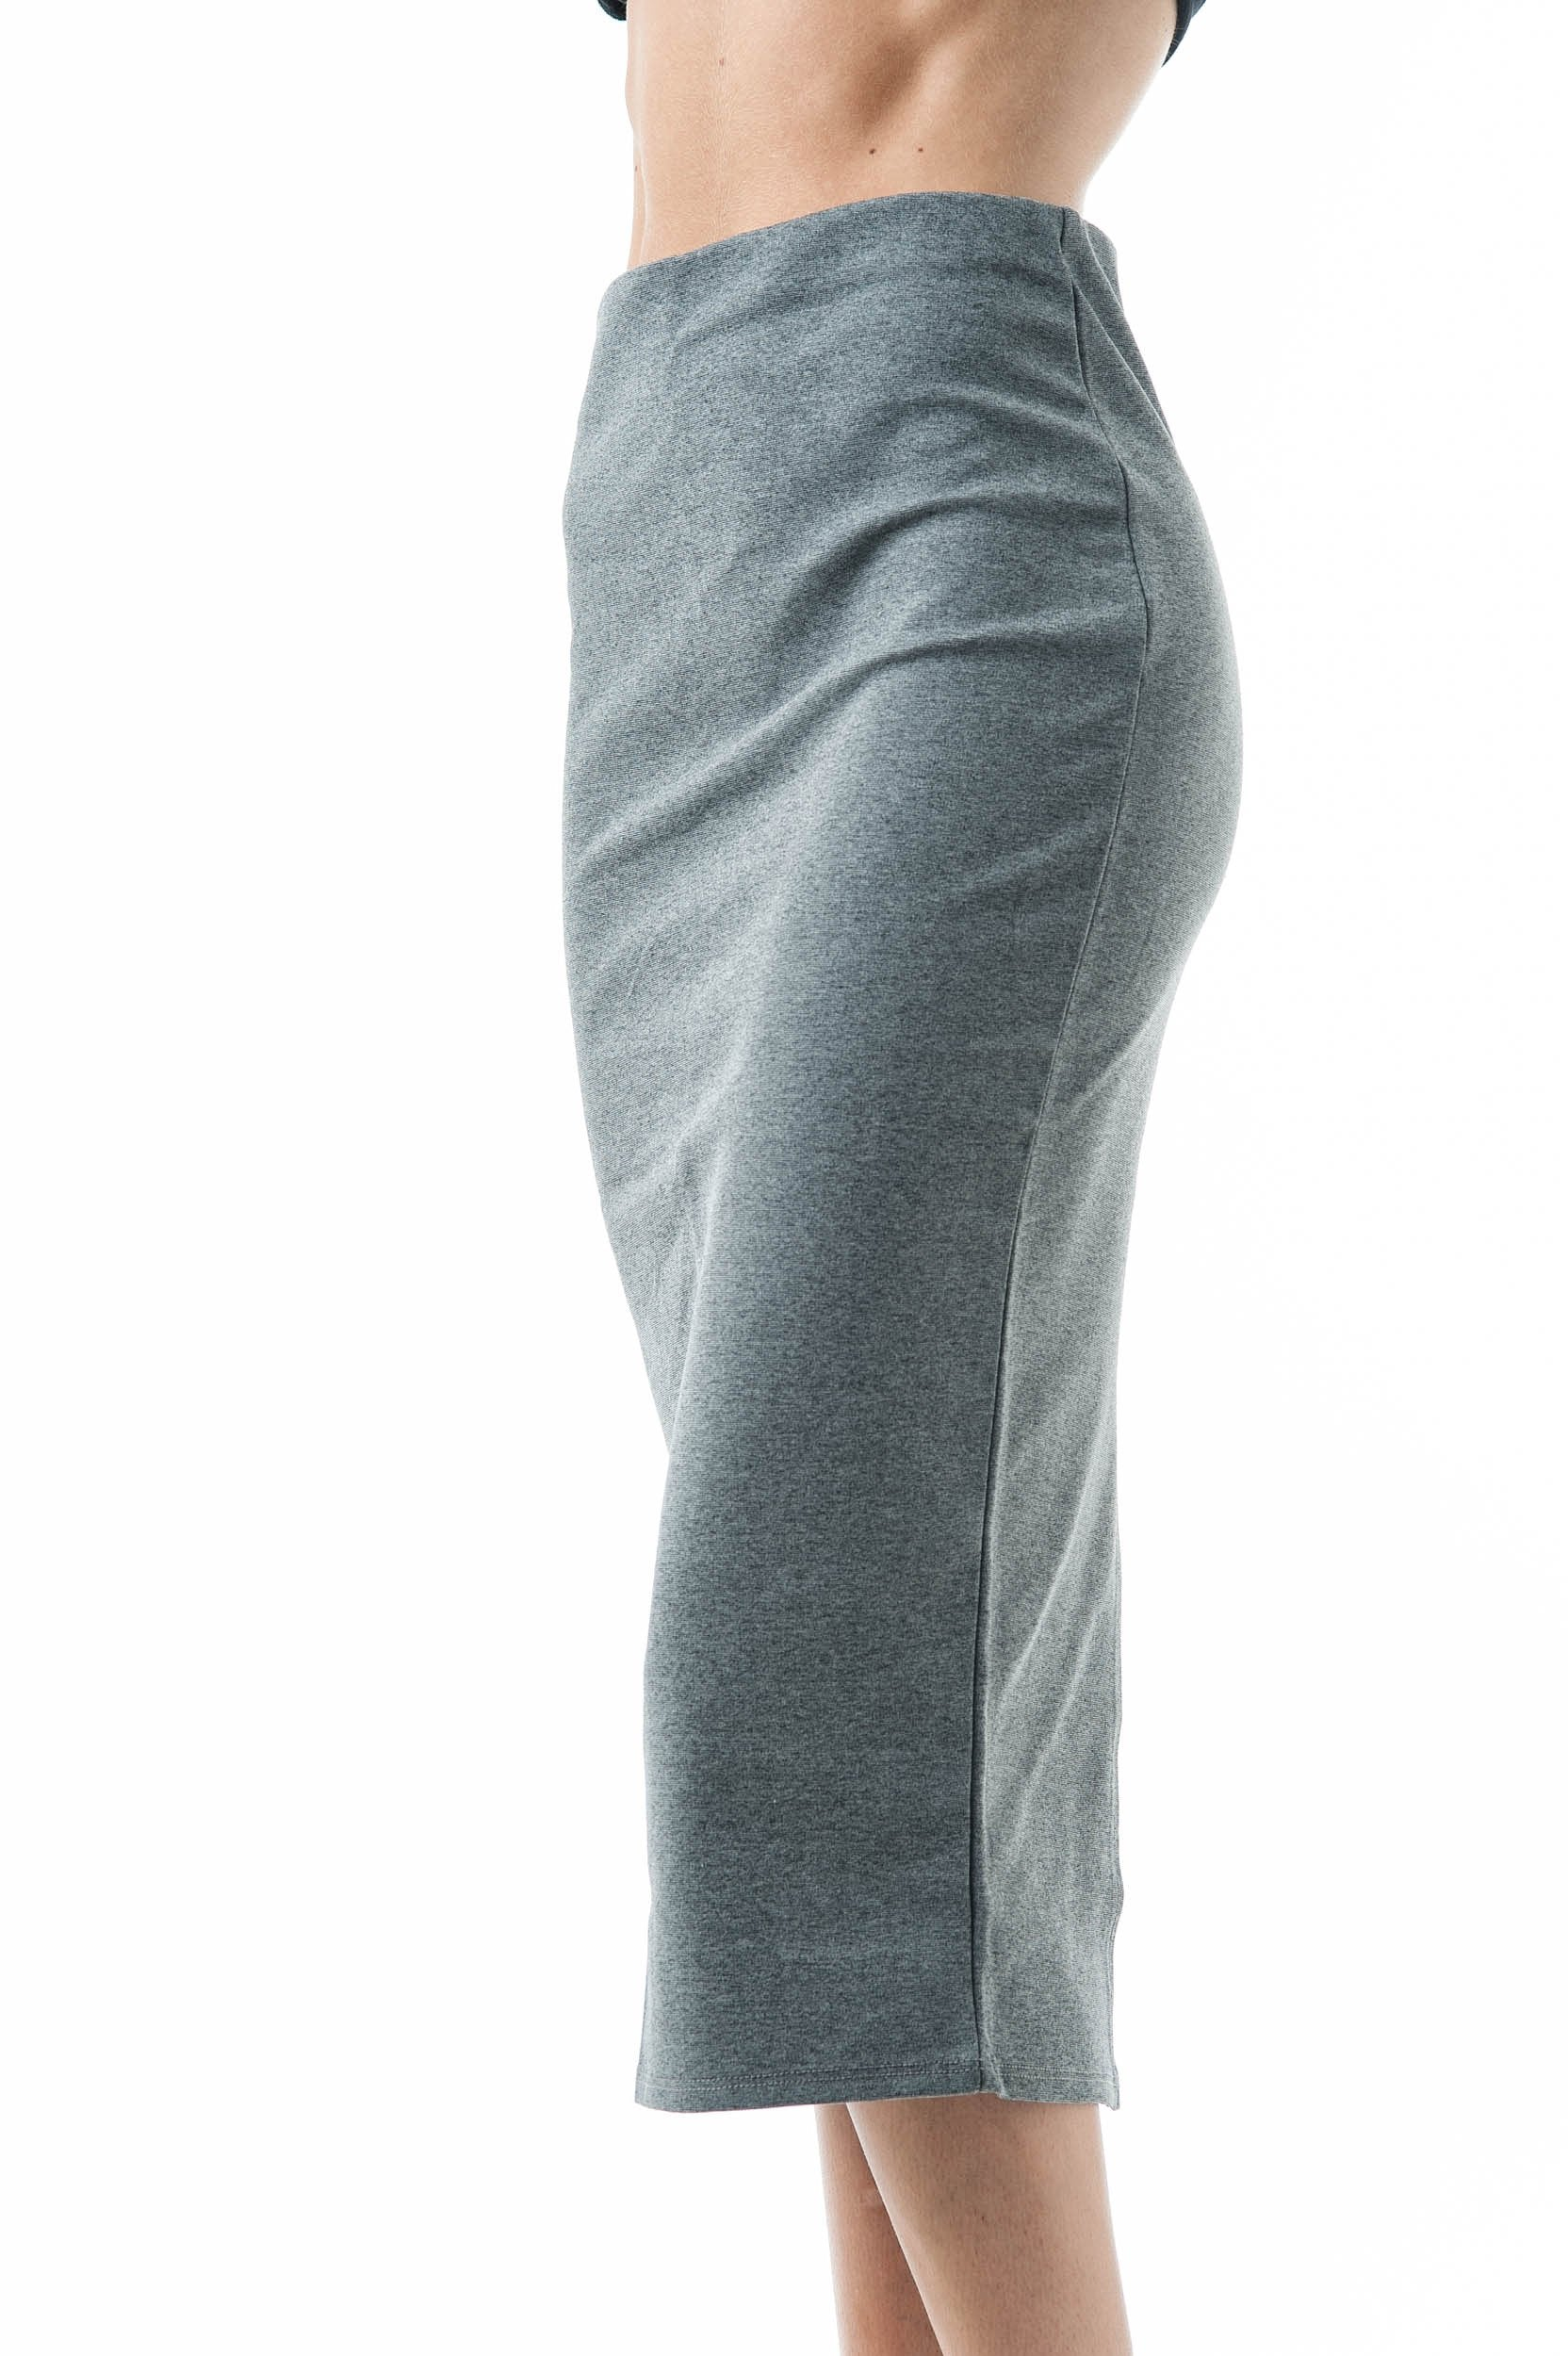 Basic Plain Long Bodycon Pencil Skirt with Slit on the Back